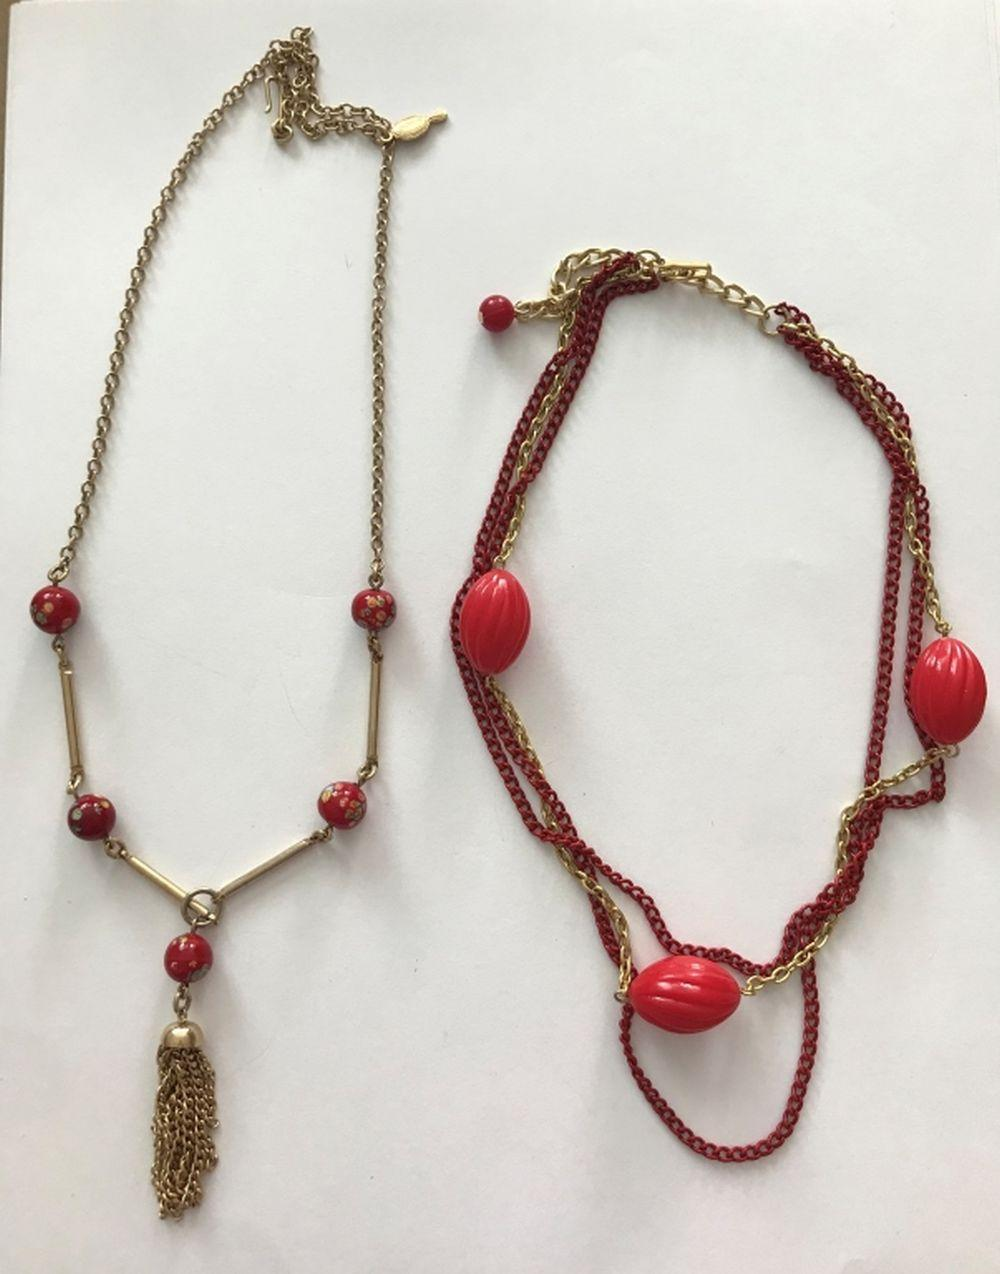 2 GOLD TONE & RED NECKLACES